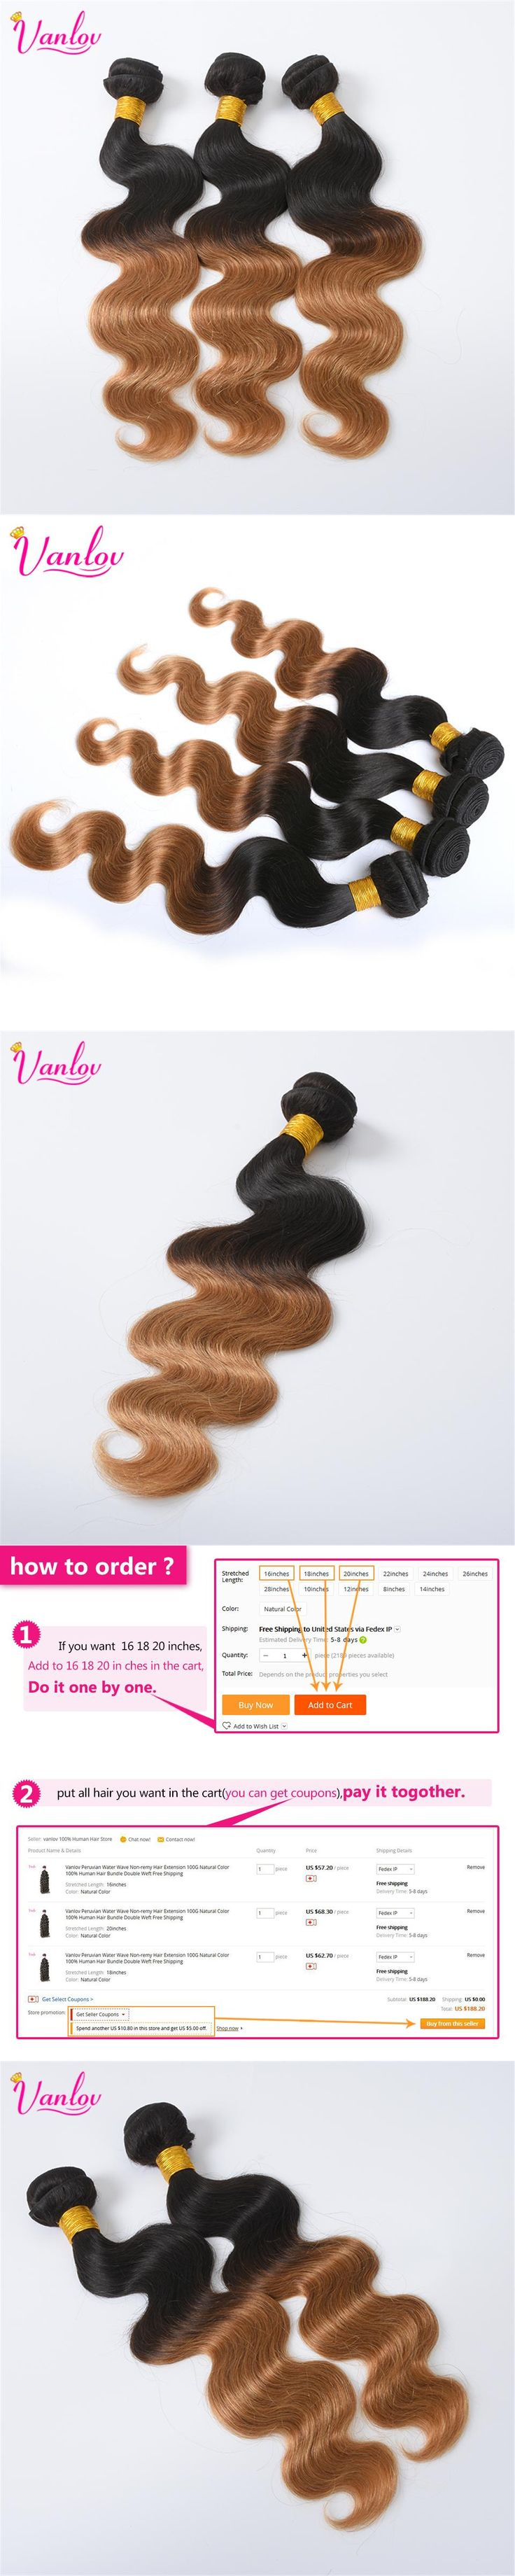 Best 25 remy hair extensions ideas on pinterest hair extensions vanlov ombre brazilian body wave hair bundles blonde hair extension non remy hair weave human hair pmusecretfo Images